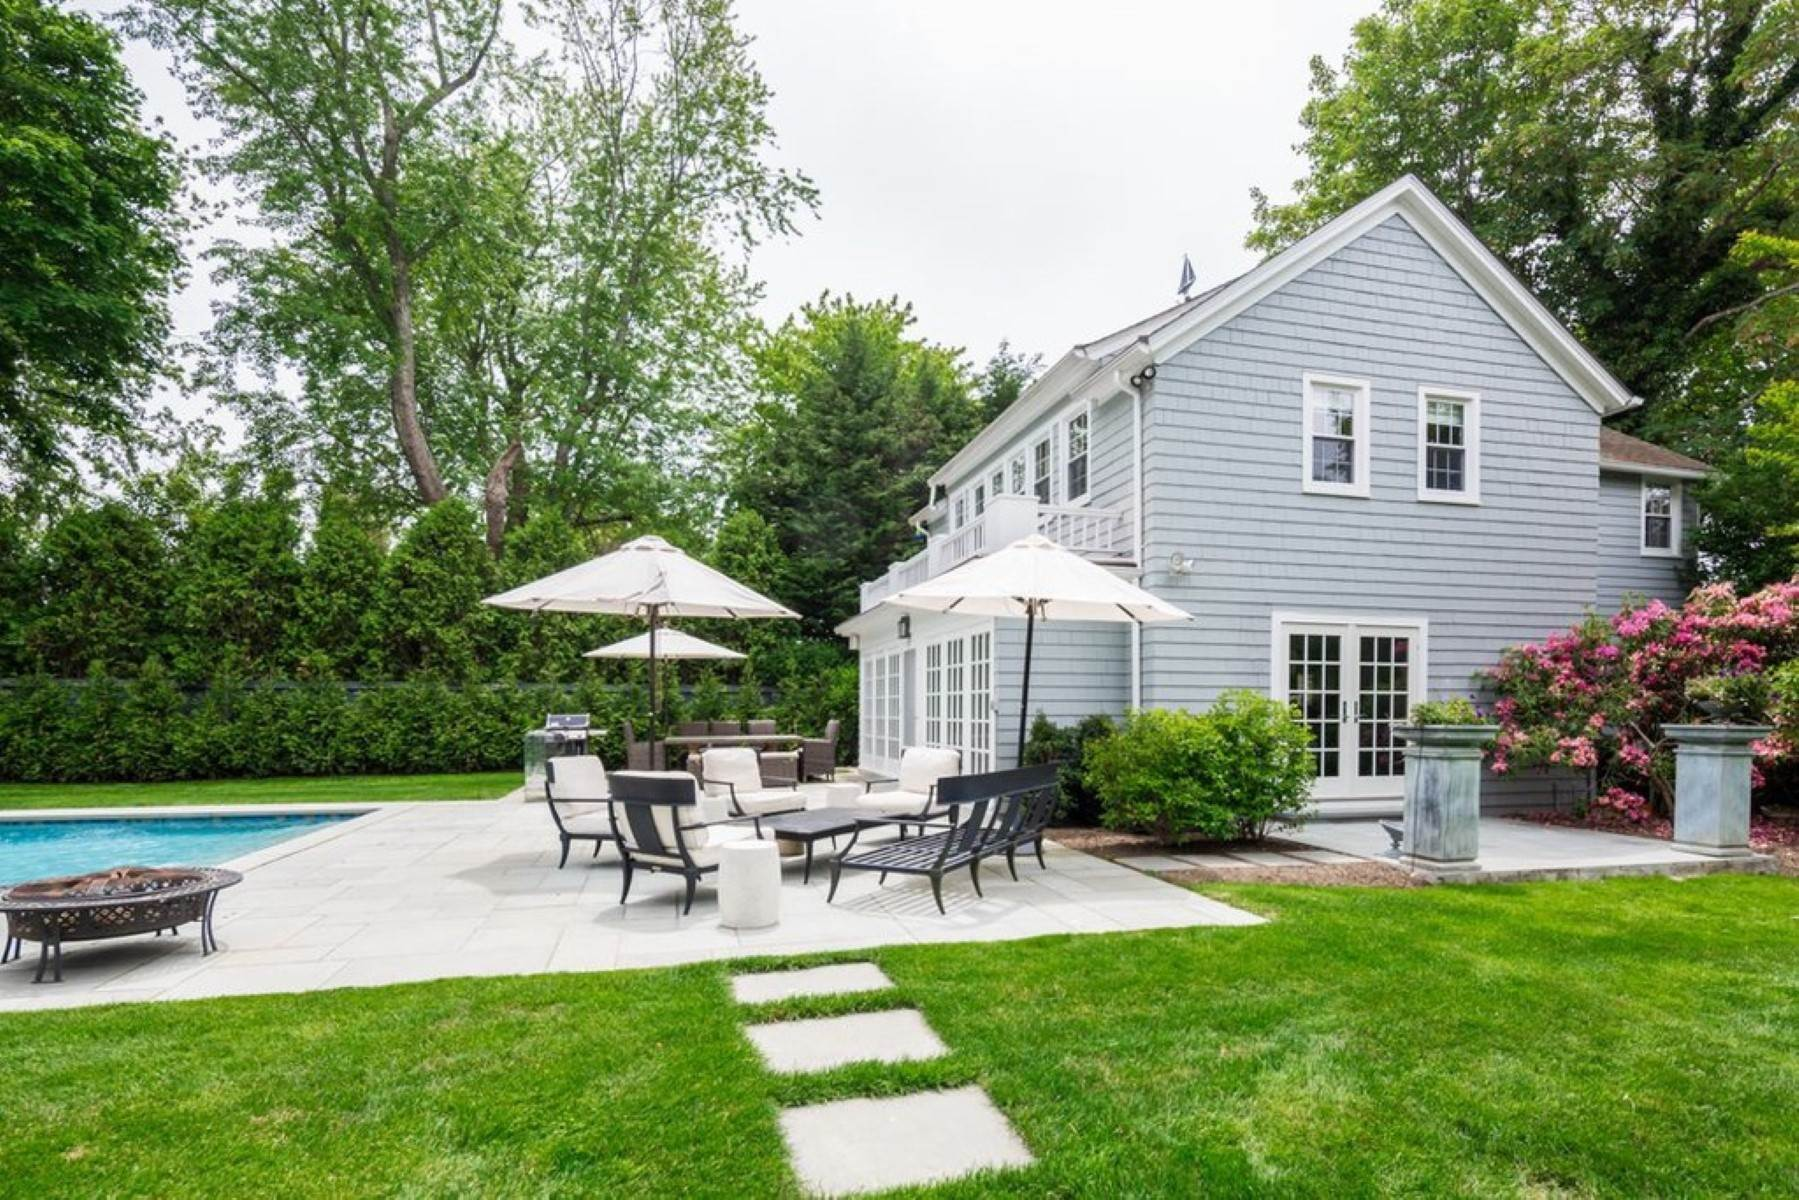 Single Family Home at Charming Carriage House Rental In Southampton Village Southampton, NY 11968